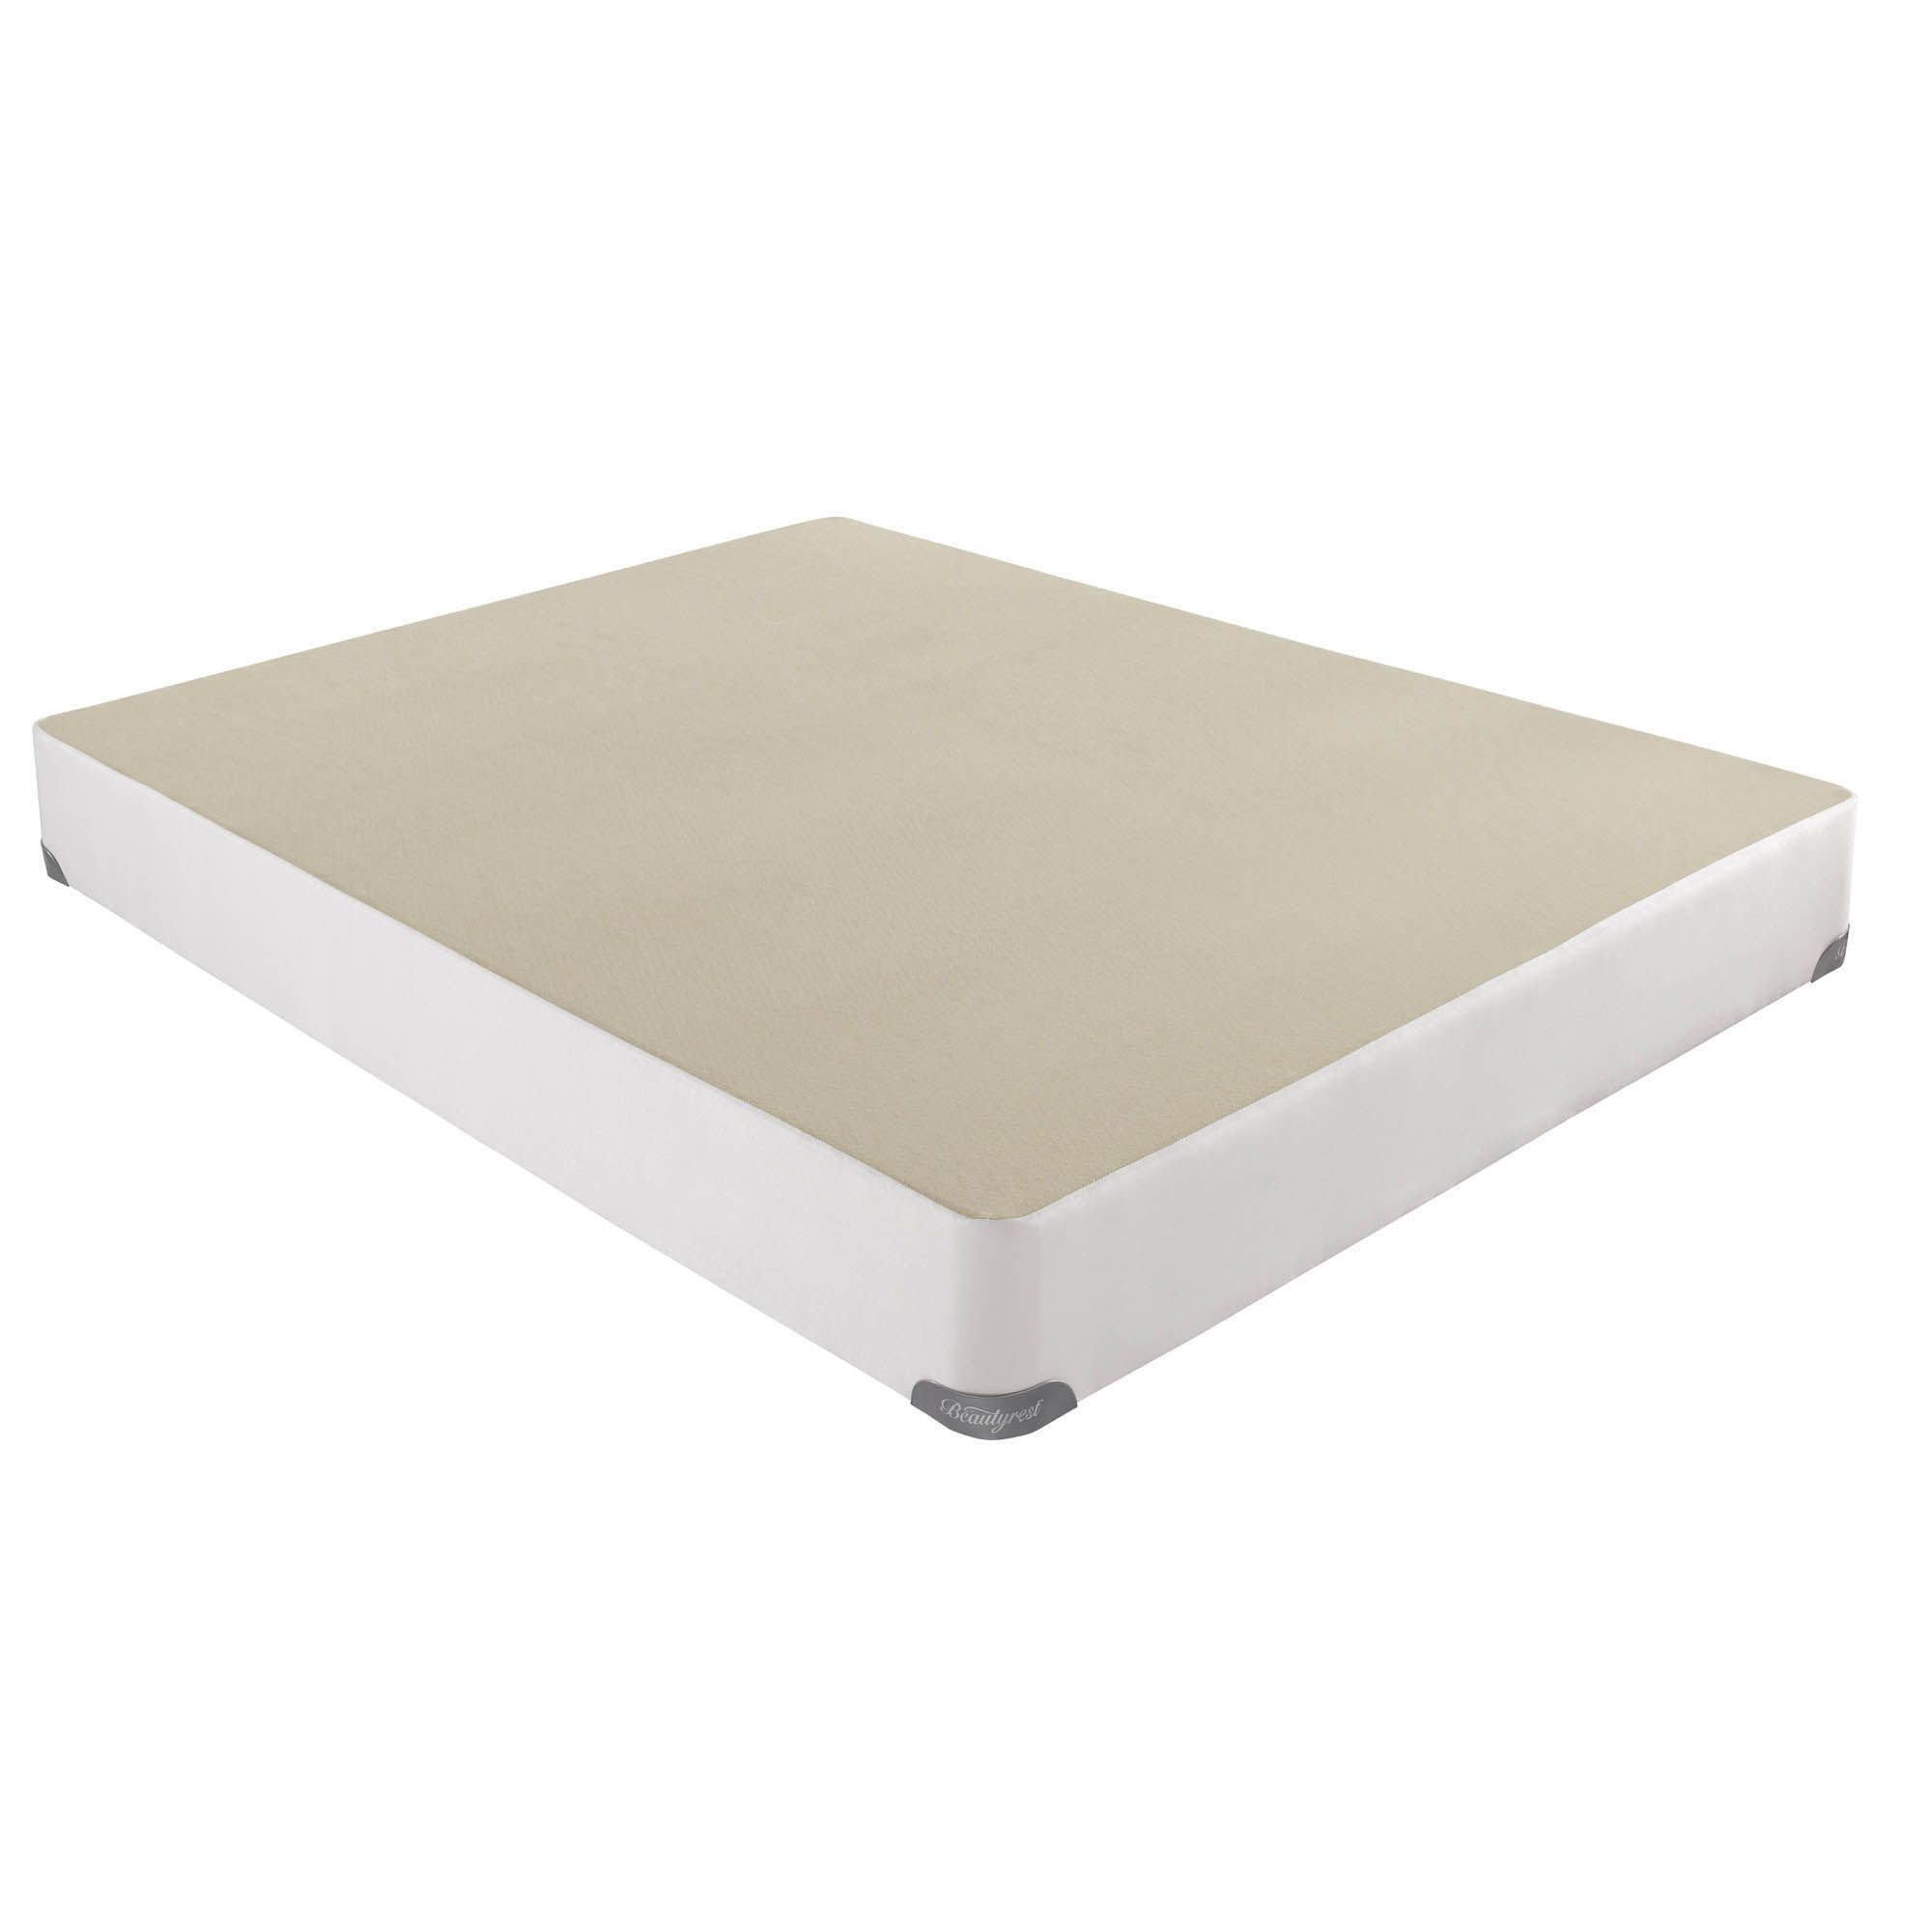 Triton-Boxspring-CA-King